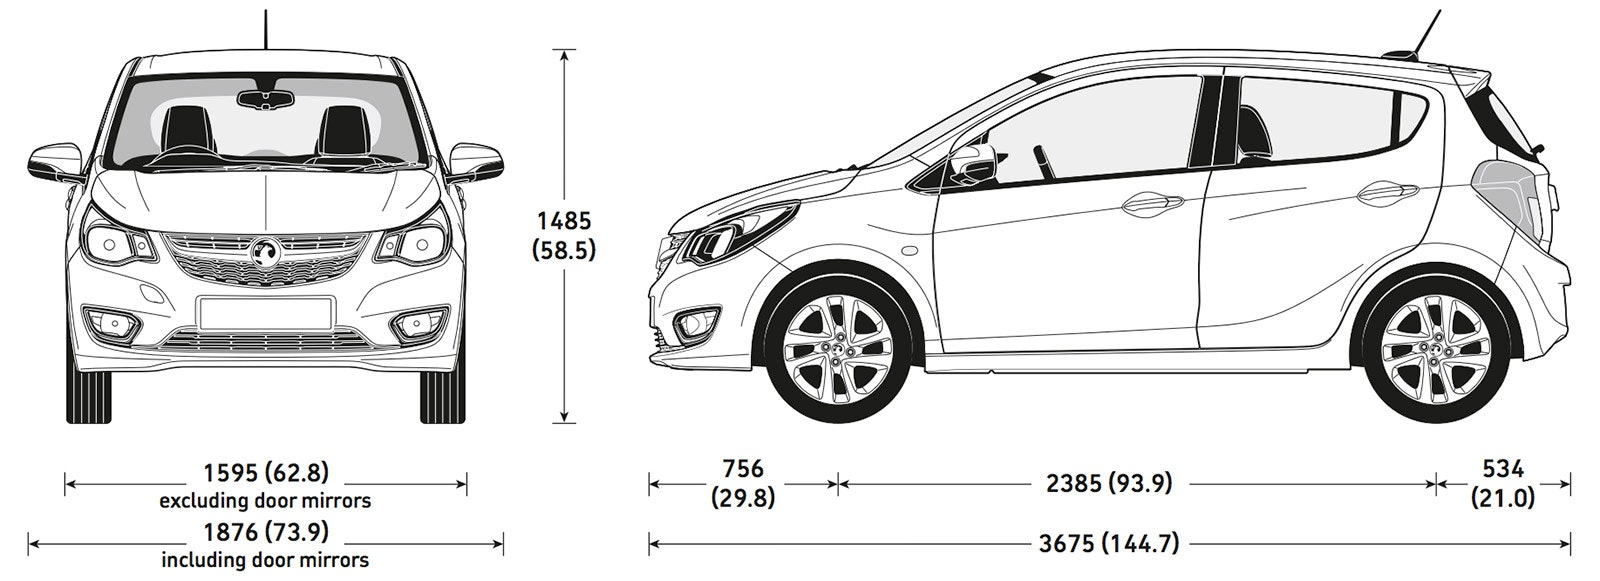 Rb Car Company >> Vauxhall Viva sizes and dimensions guide | carwow